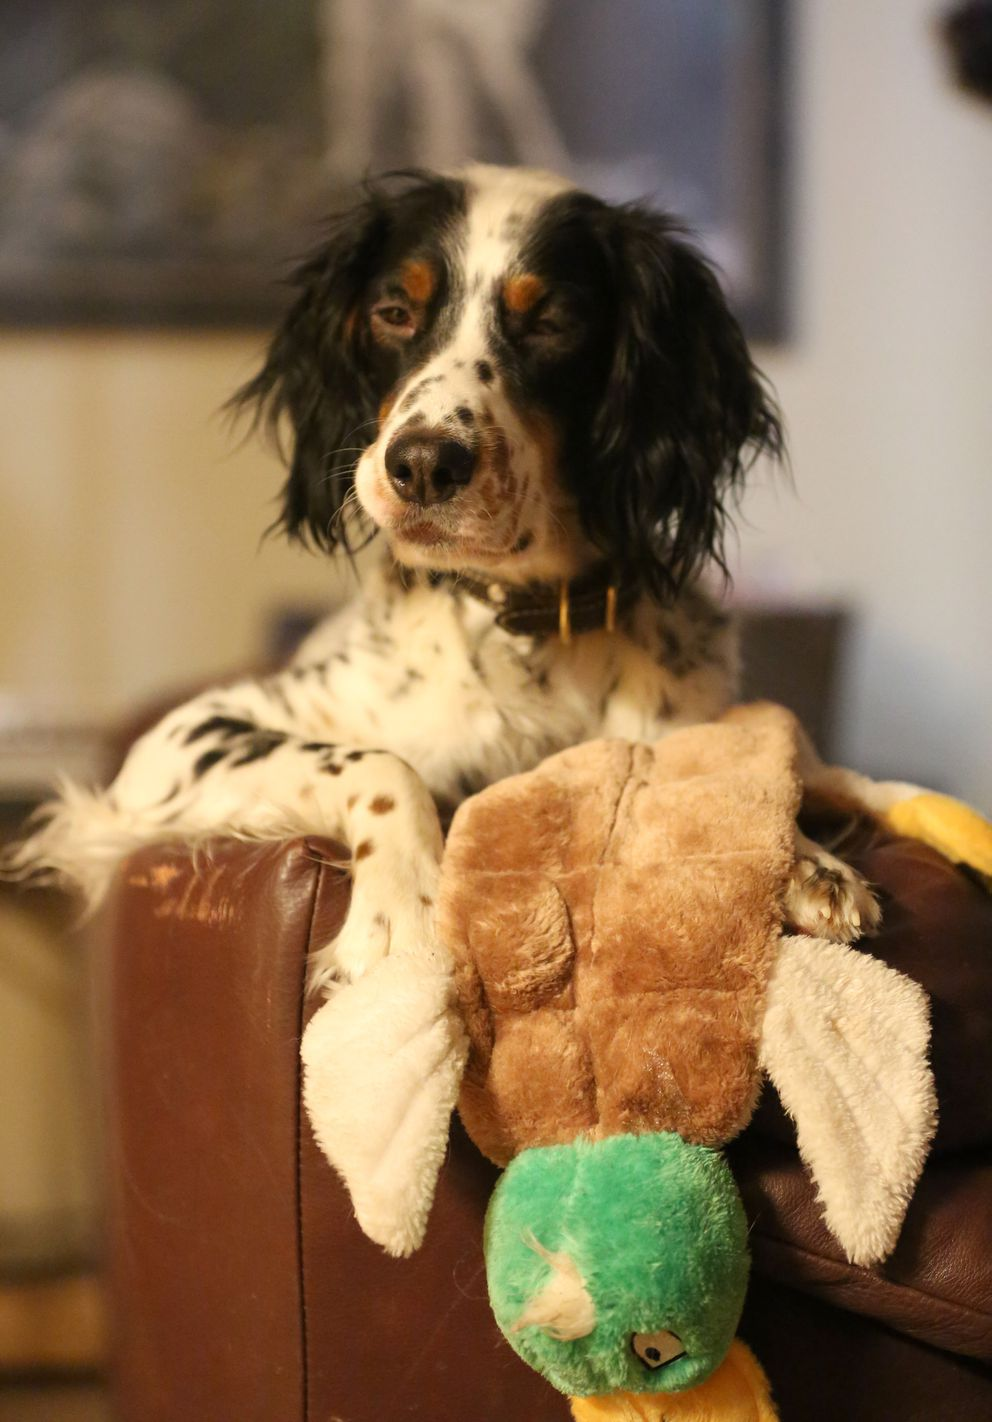 Purdey, perched on the back of the sofa with a favorite toy she got for Christmas. (Steve Meyer)